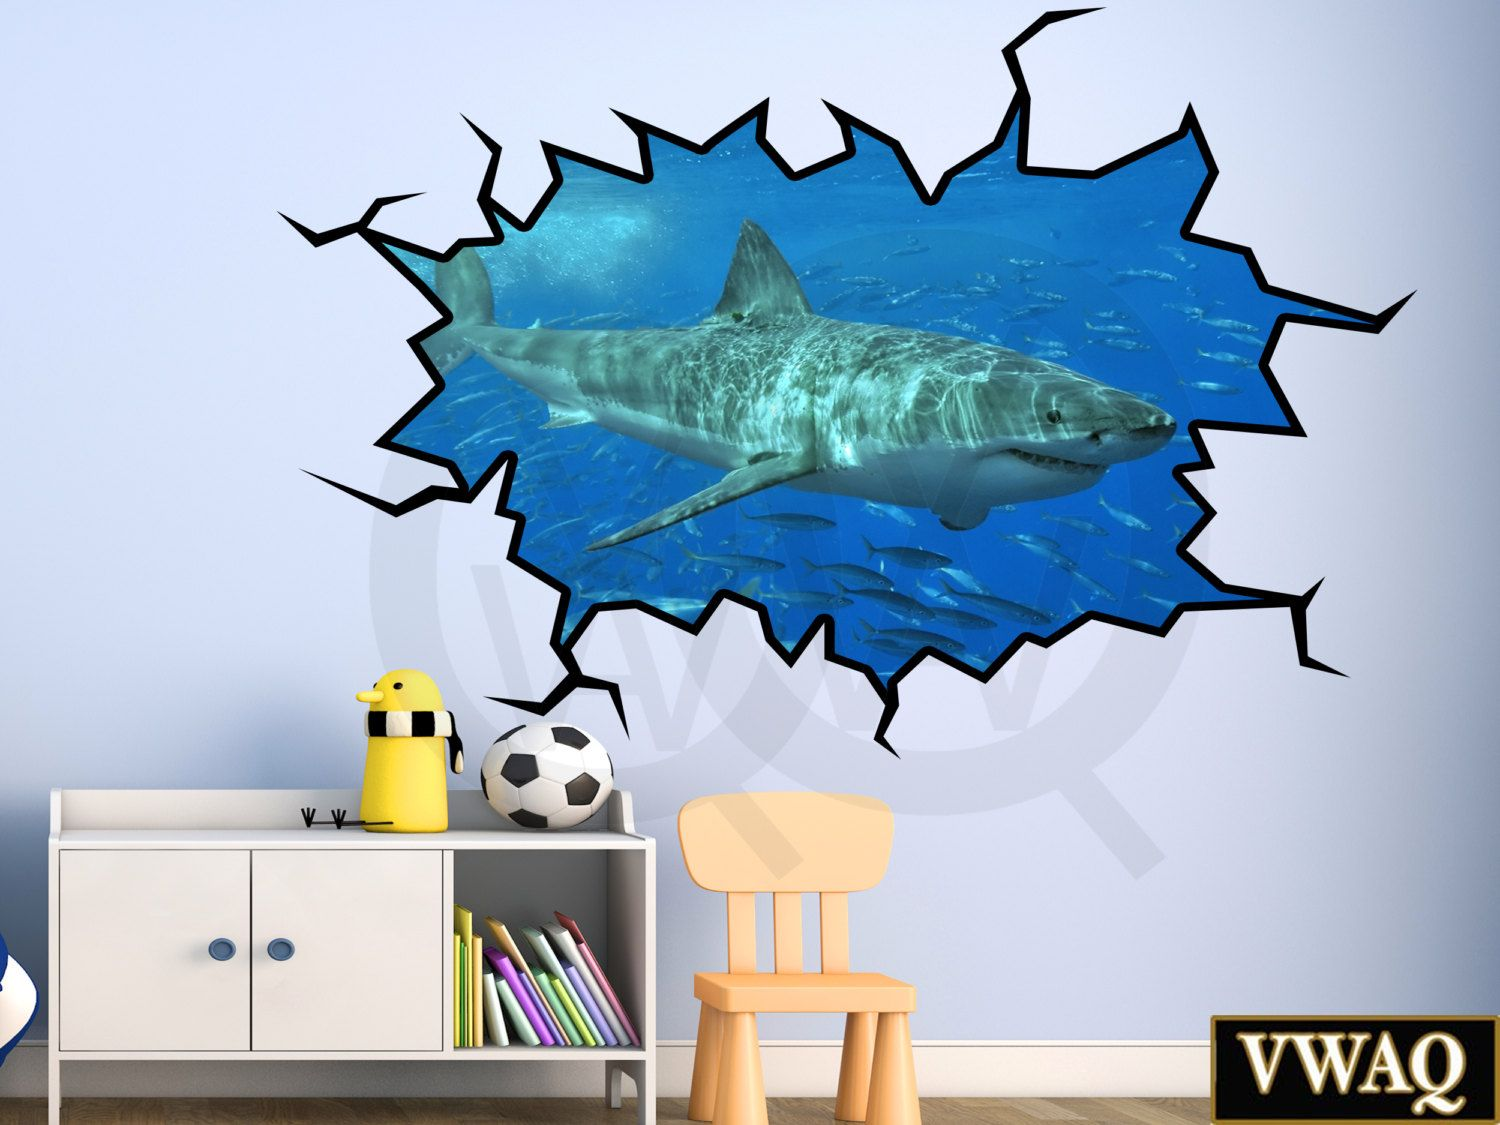 Superieur Shark Wall Decals 3D Wall Decal Great White Shark Wall Sticker Family Wall  Art Vinyl Peel And Stick Hole In The Wall Home Decor VWAQ WC17 | 3d Wall  Decals, ...